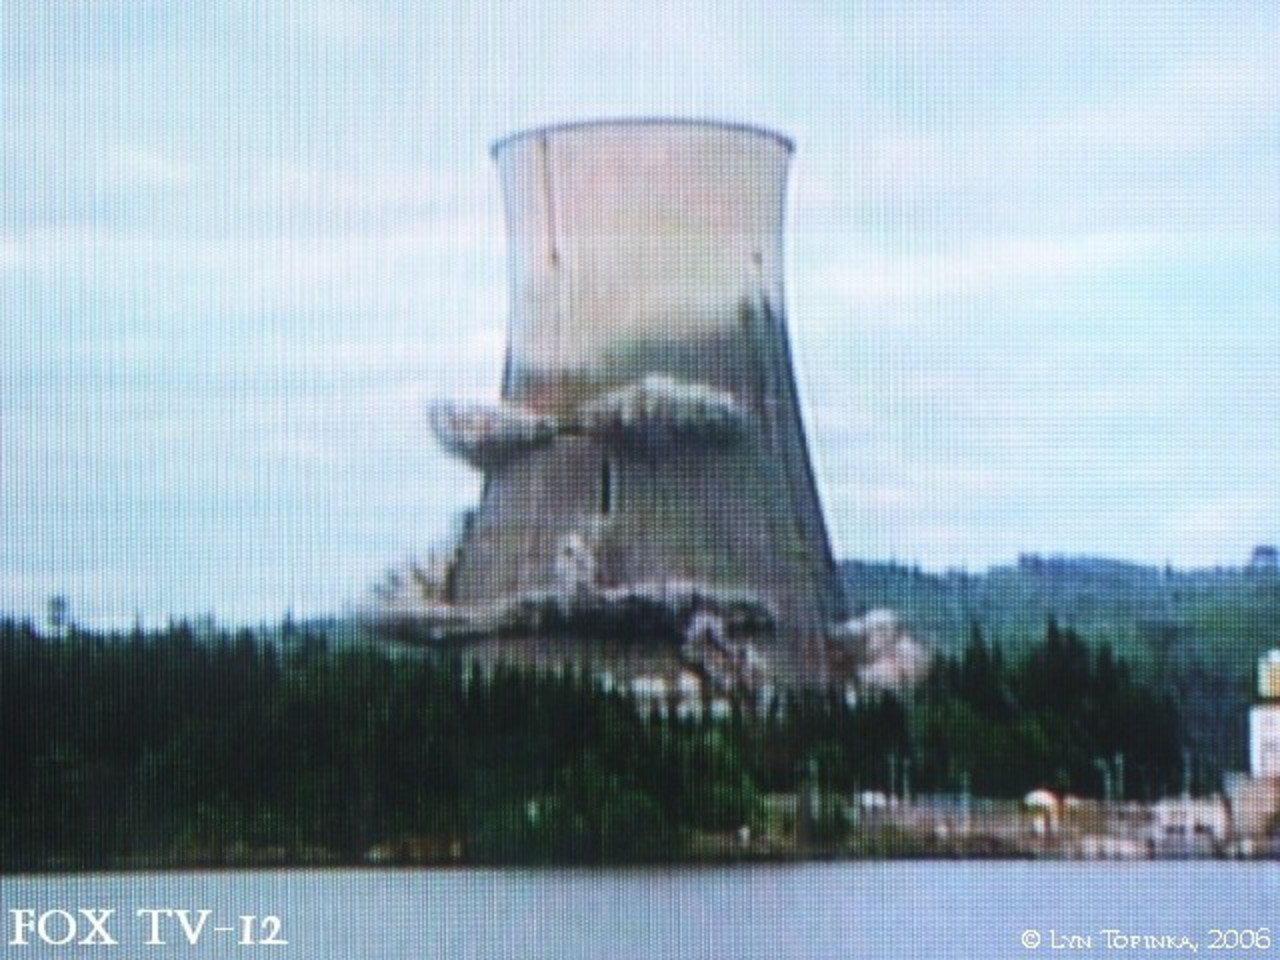 The Columbia River - Trojan Nuclear Facility, Rainier, Oregon